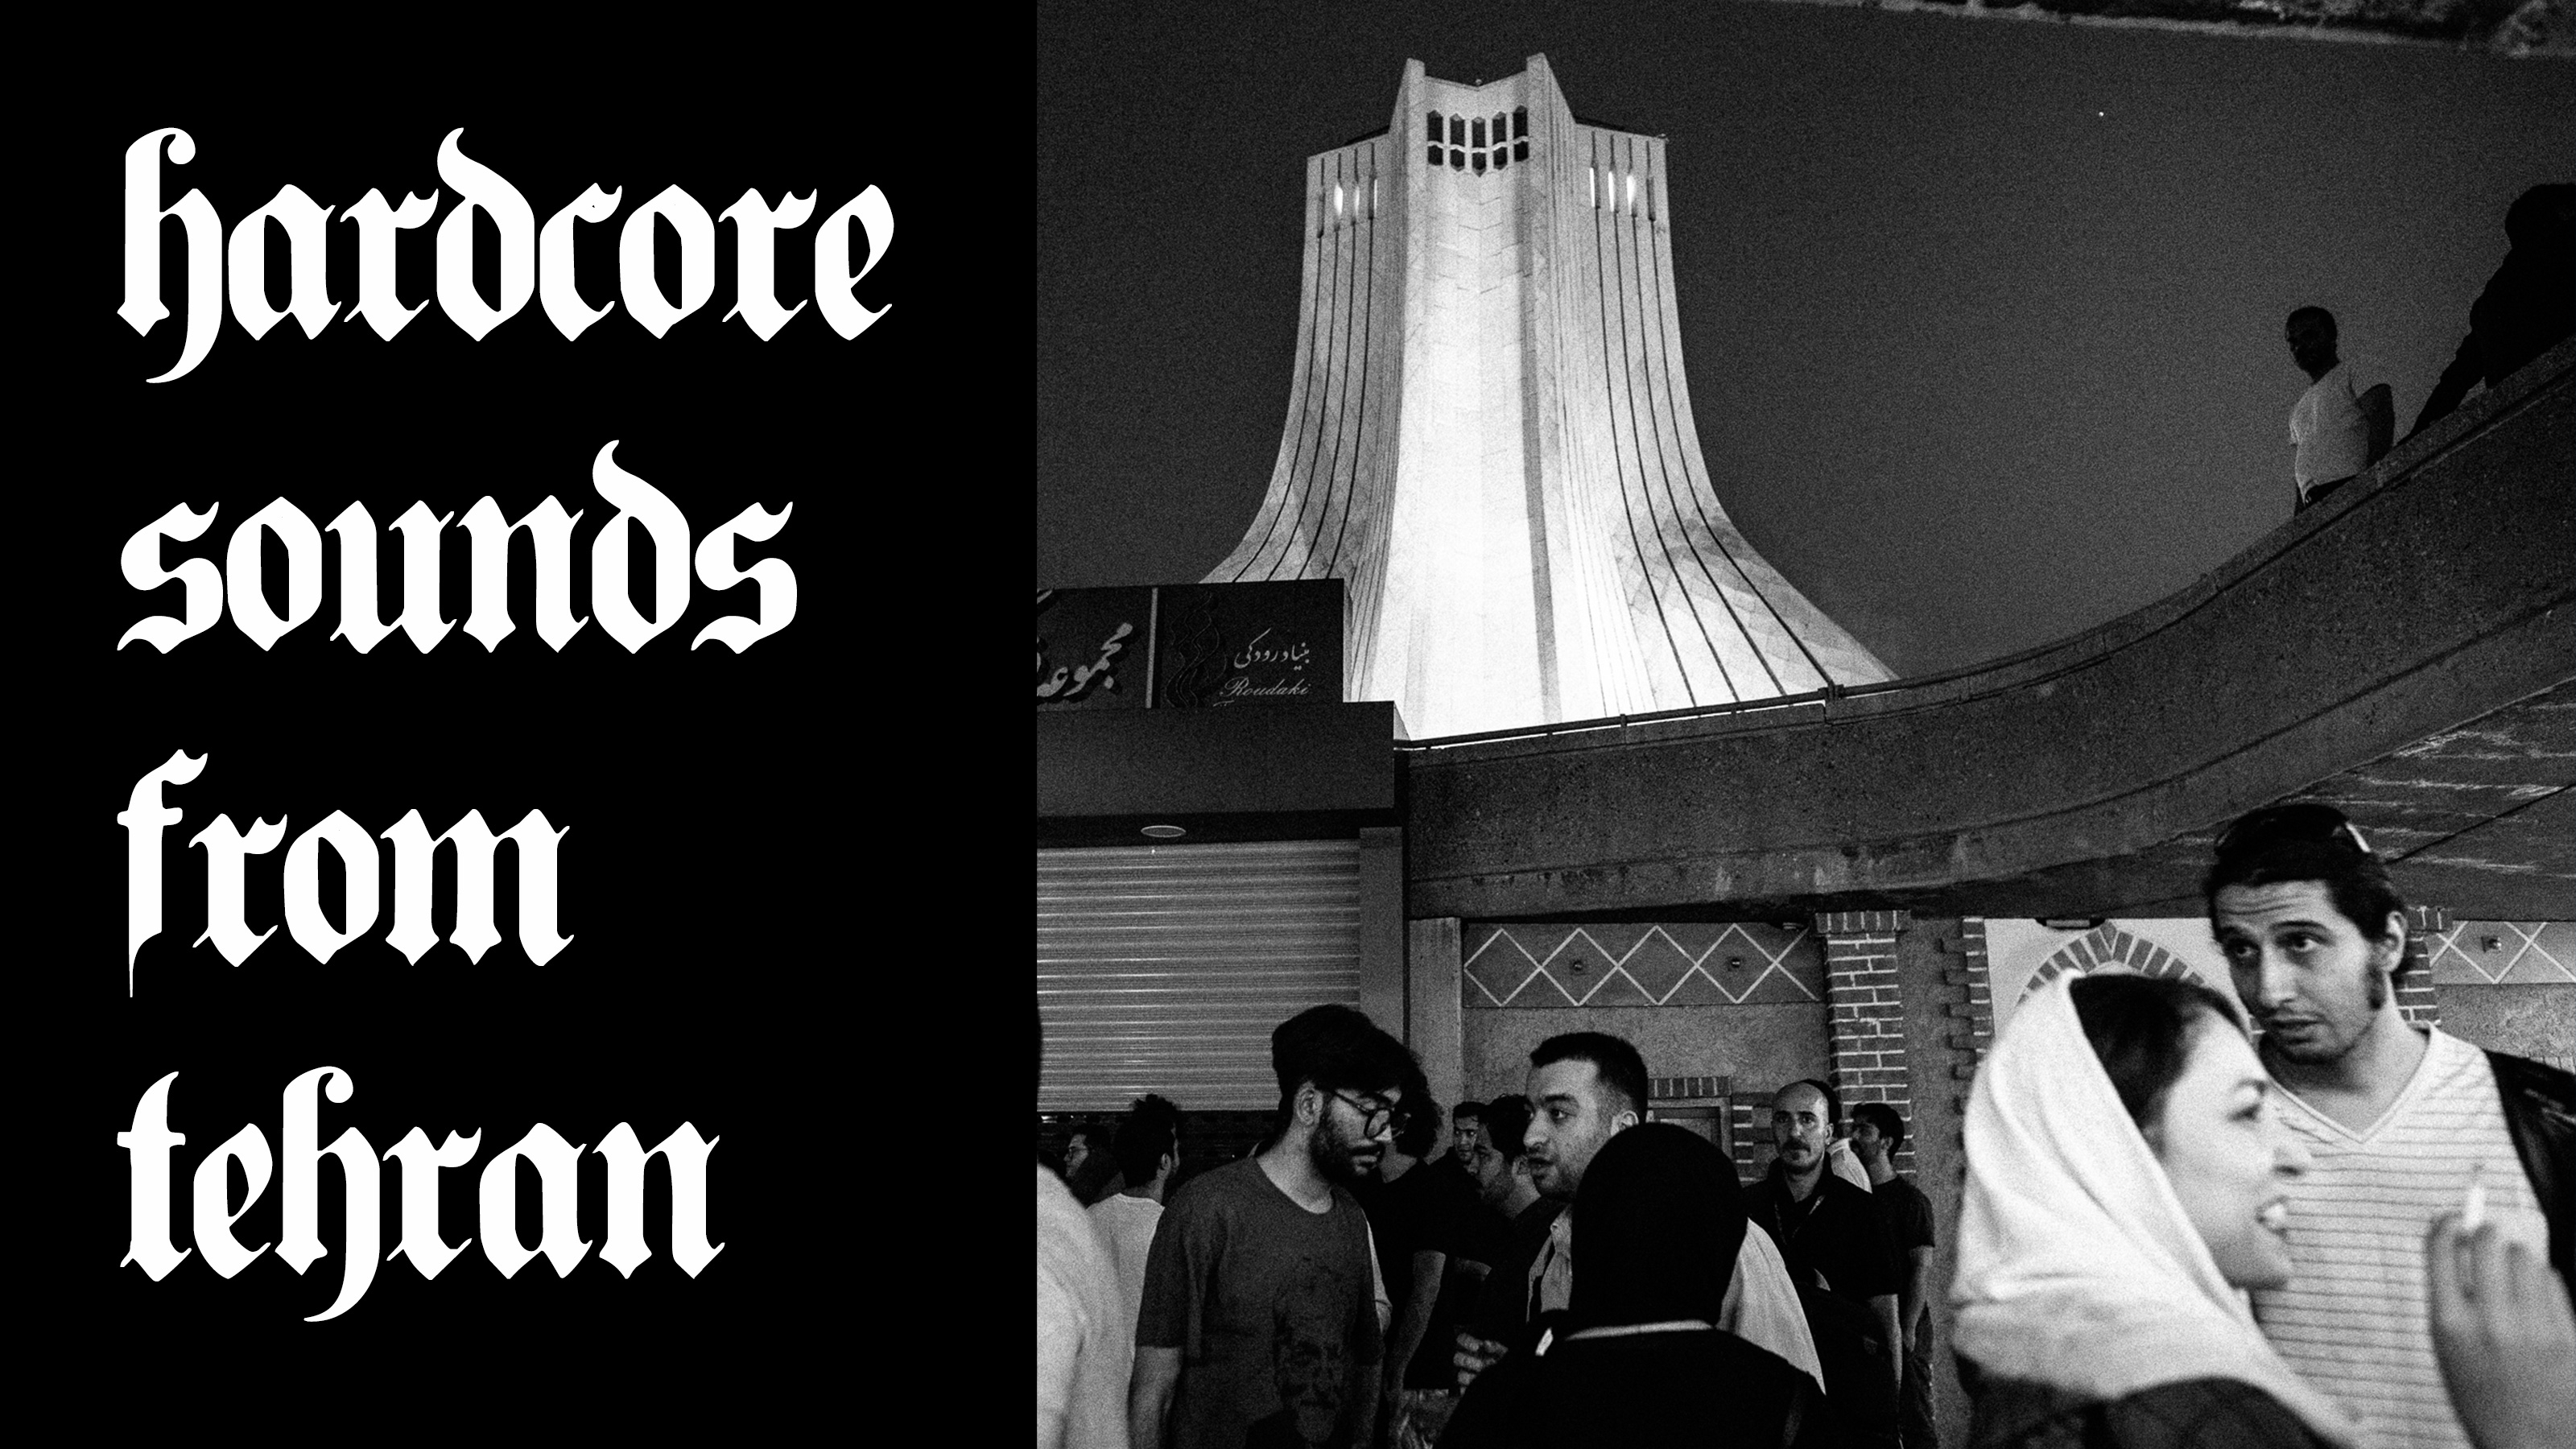 RA: Hardcore sounds from Tehran